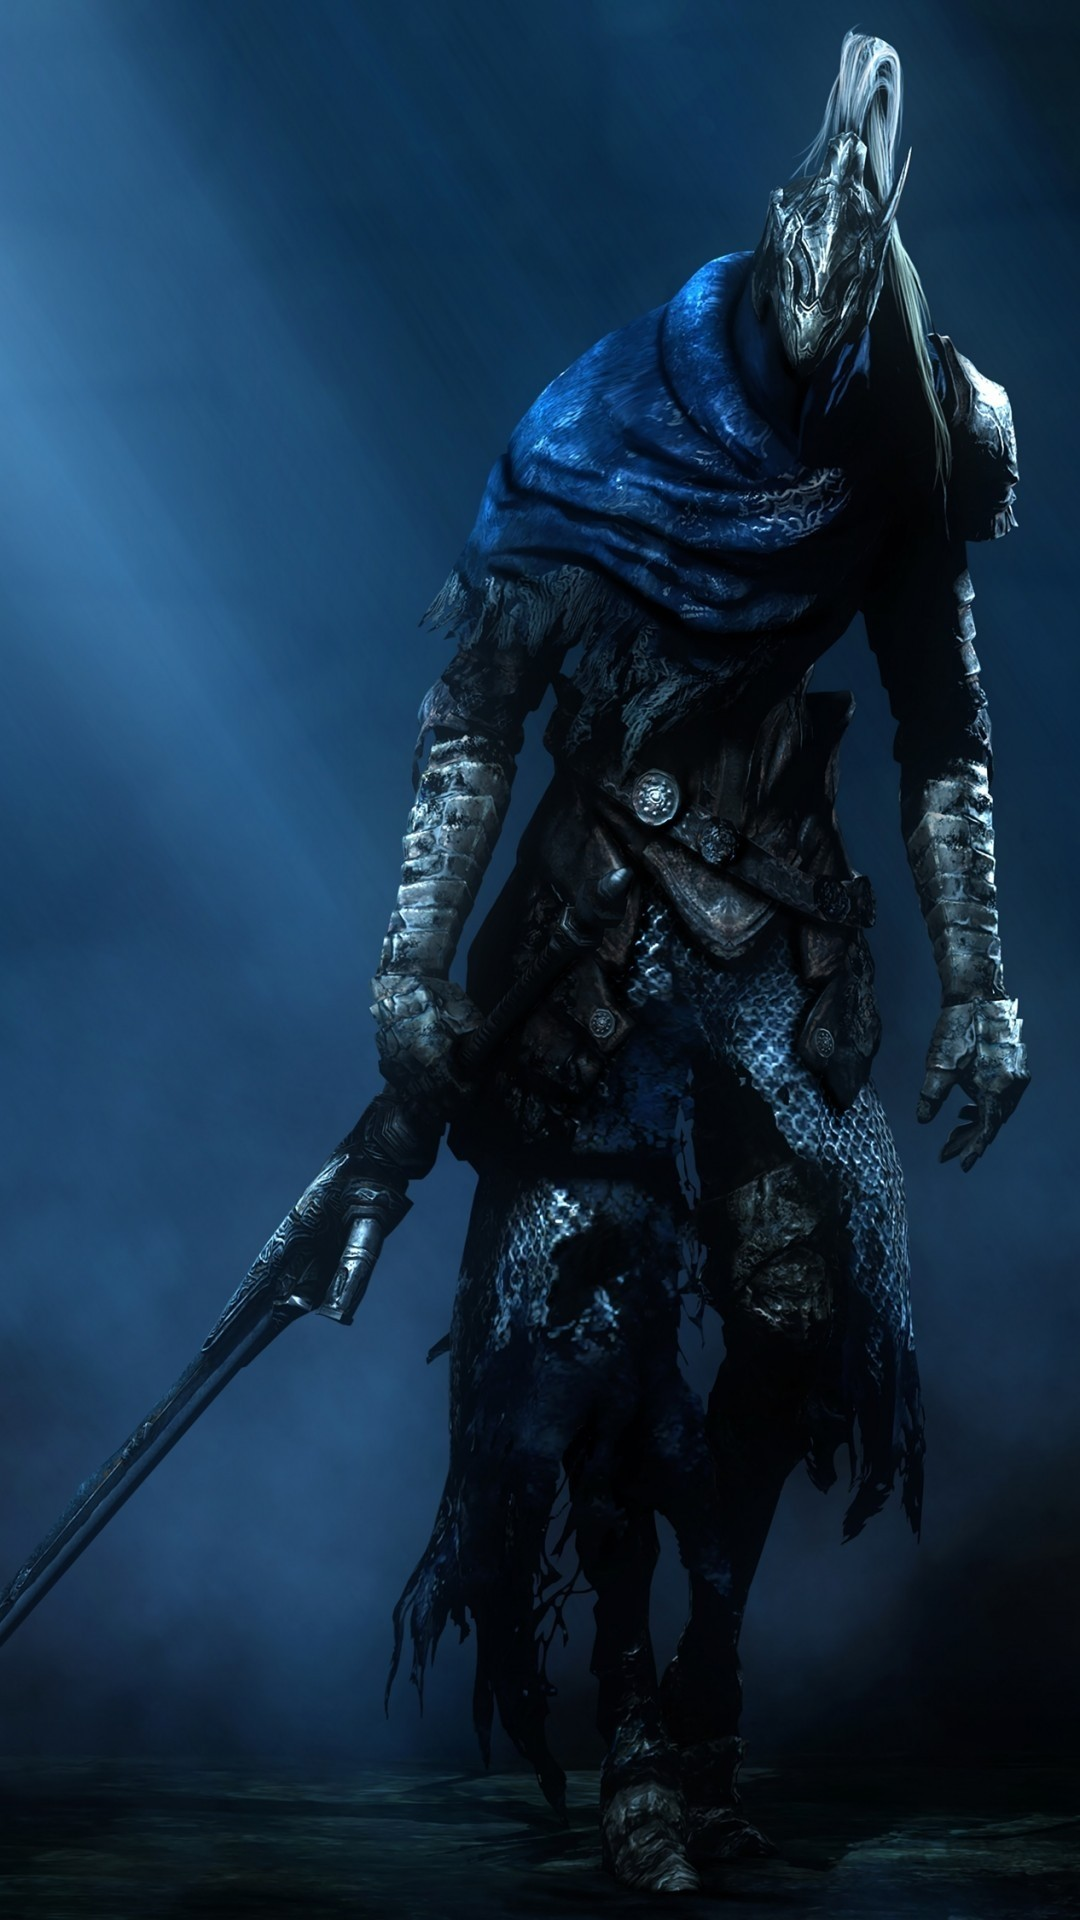 Dark Souls wallpaper for iPhone